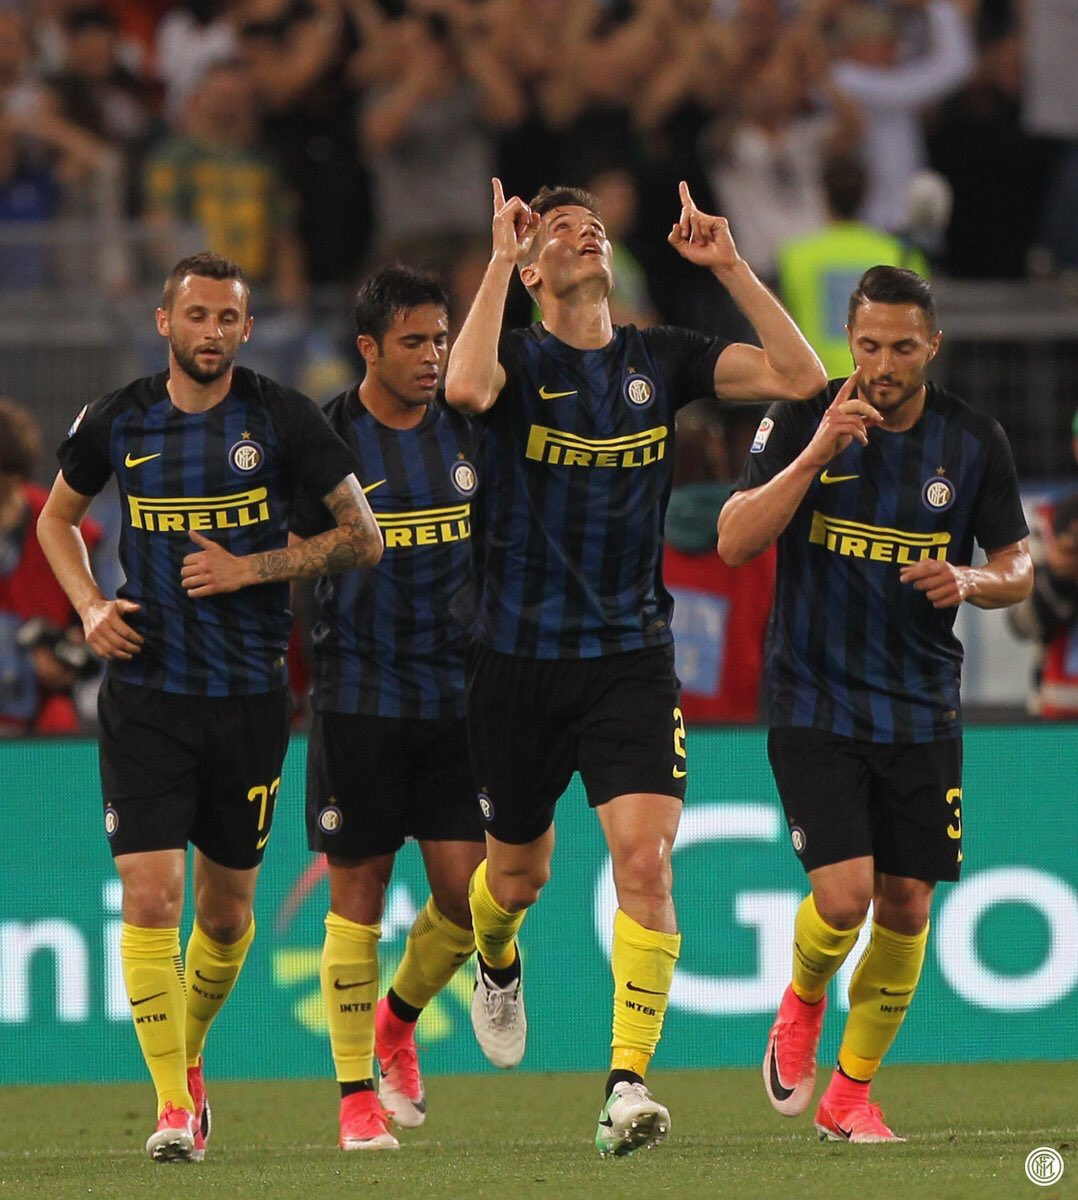 #Inter played with 6 #Italians  today against #Lazio, #DAmbrosio #Santon #Andreolli #Gagliardini #Eder #Candreva. It has been a long time!<br>http://pic.twitter.com/OpfNiN0Yvb